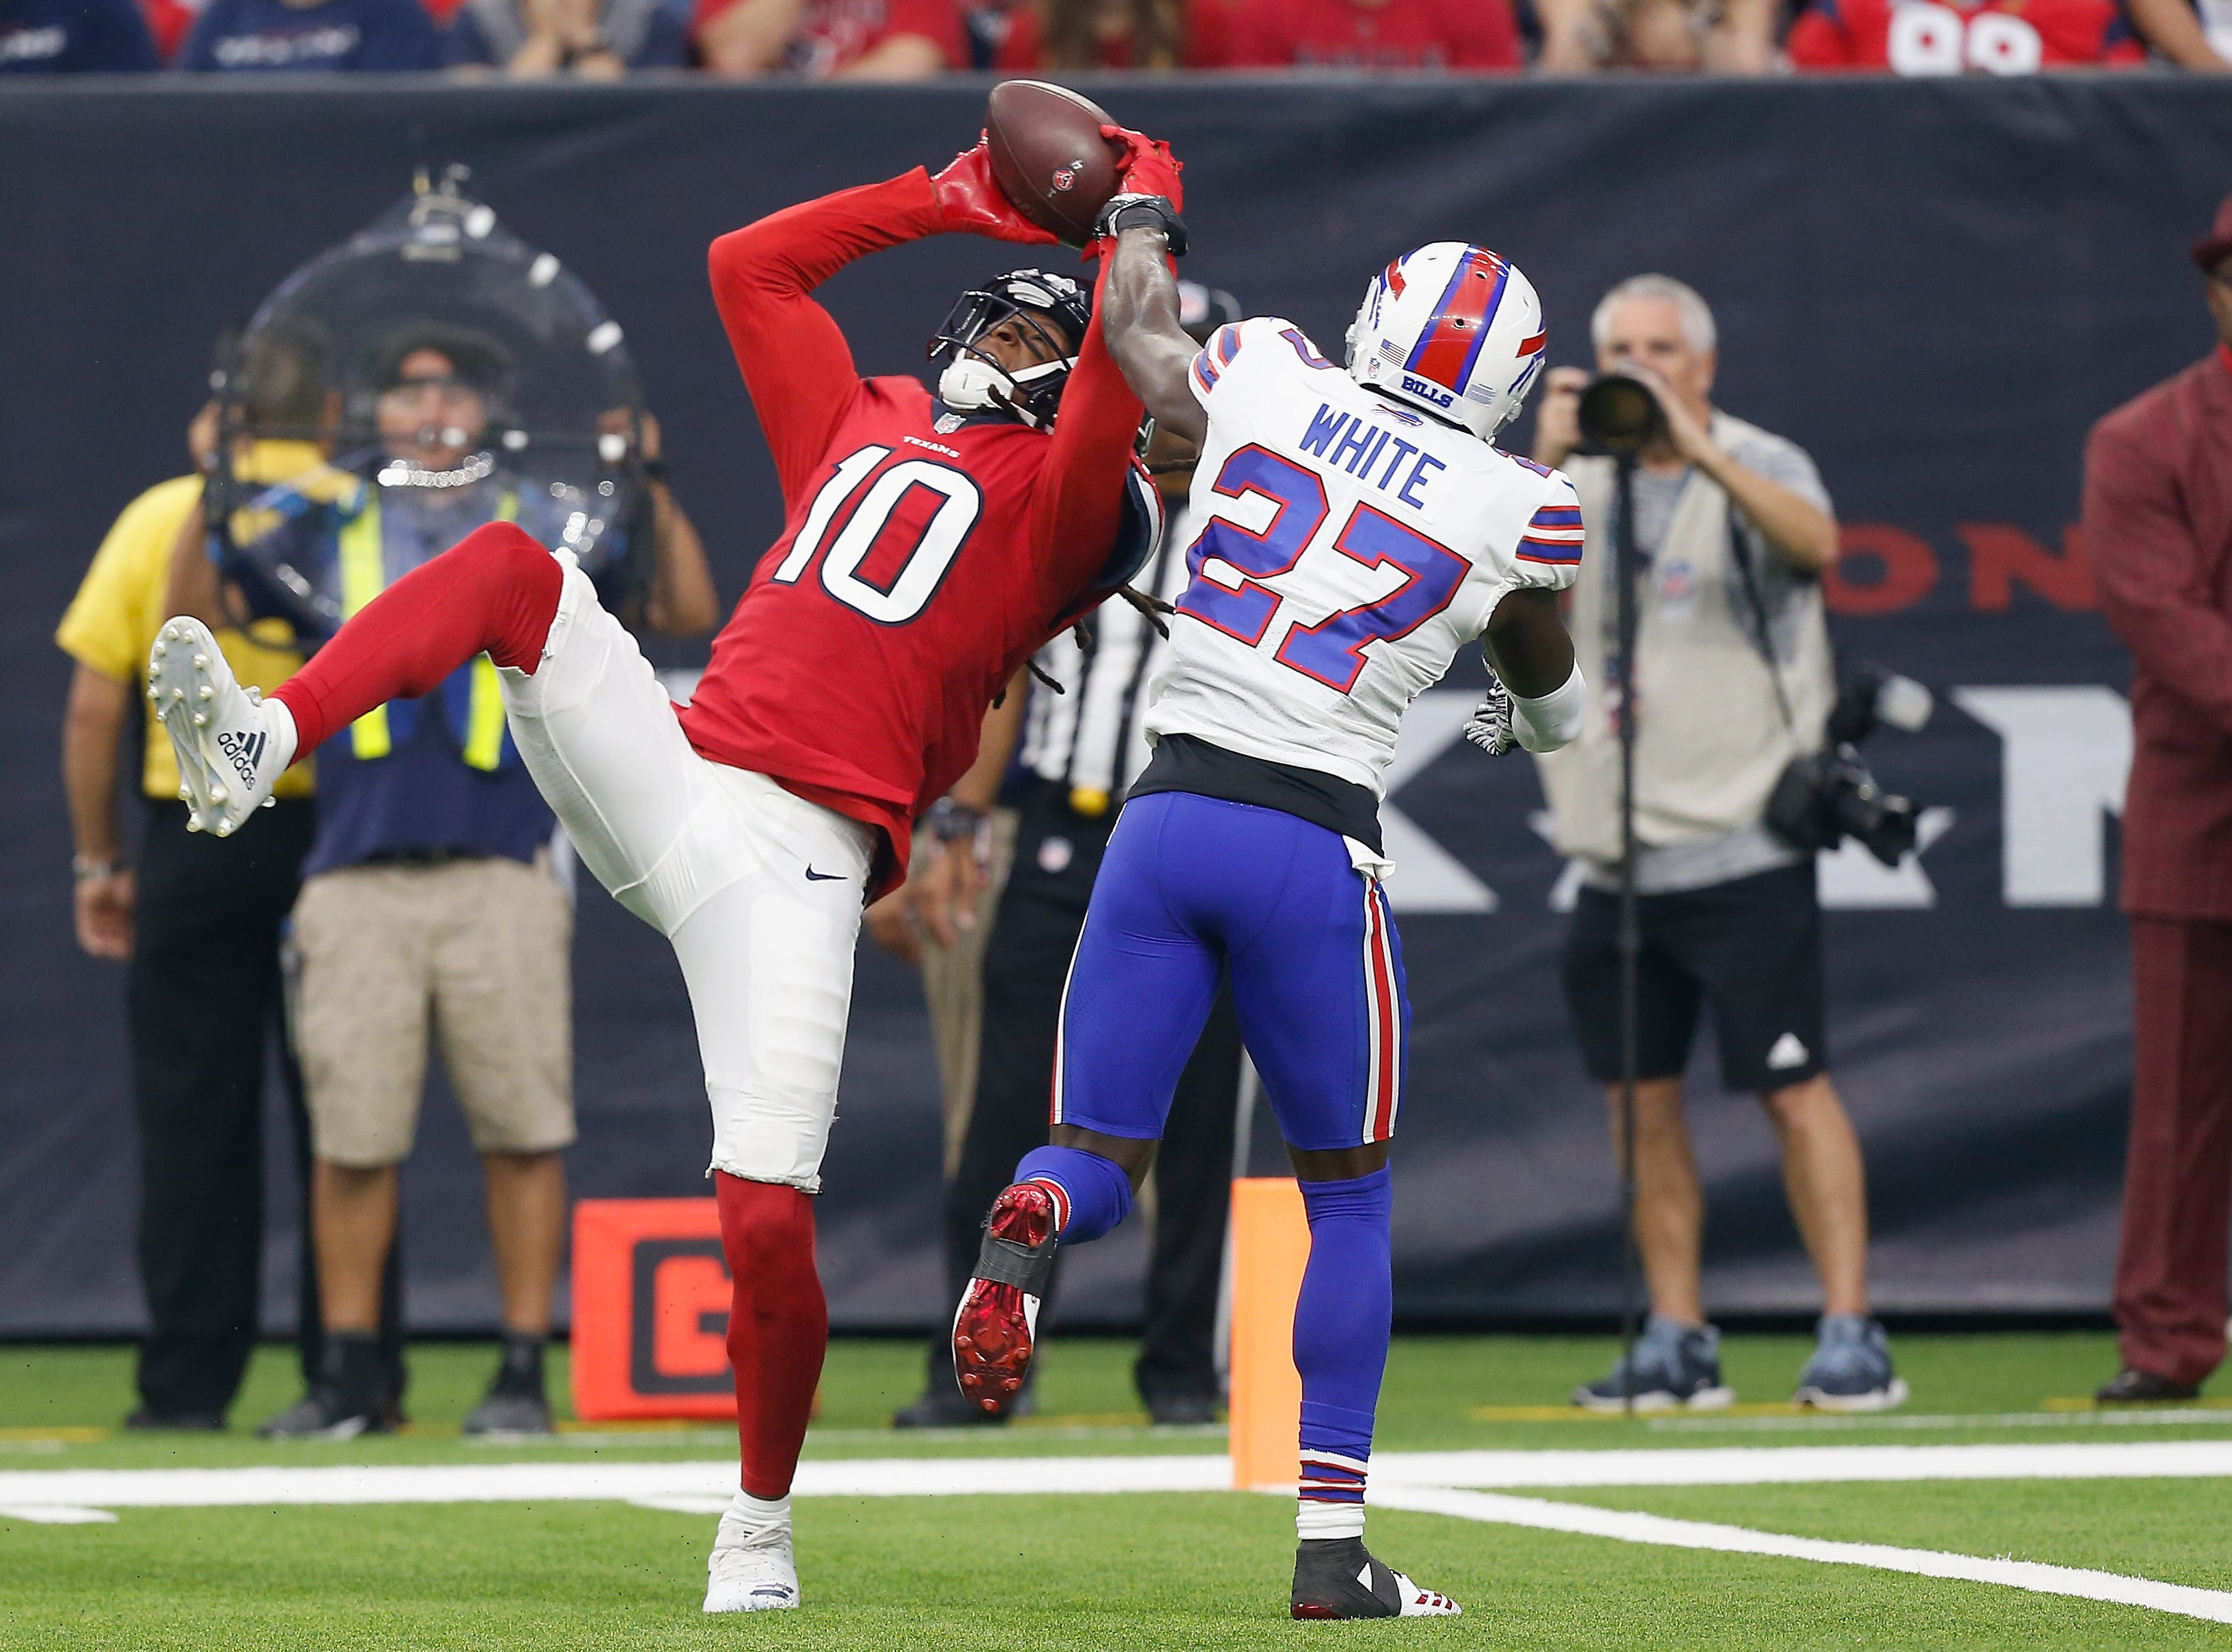 HOUSTON, TX - OCTOBER 14:  DeAndre Hopkins #10 of the Houston Texans catches a touchdown pass defended by Tre'Davious White #27 of the Buffalo Bills in the first quarter at NRG Stadium on October 14, 2018 in Houston, Texas.  (Photo by Bob Levey/Getty Images)